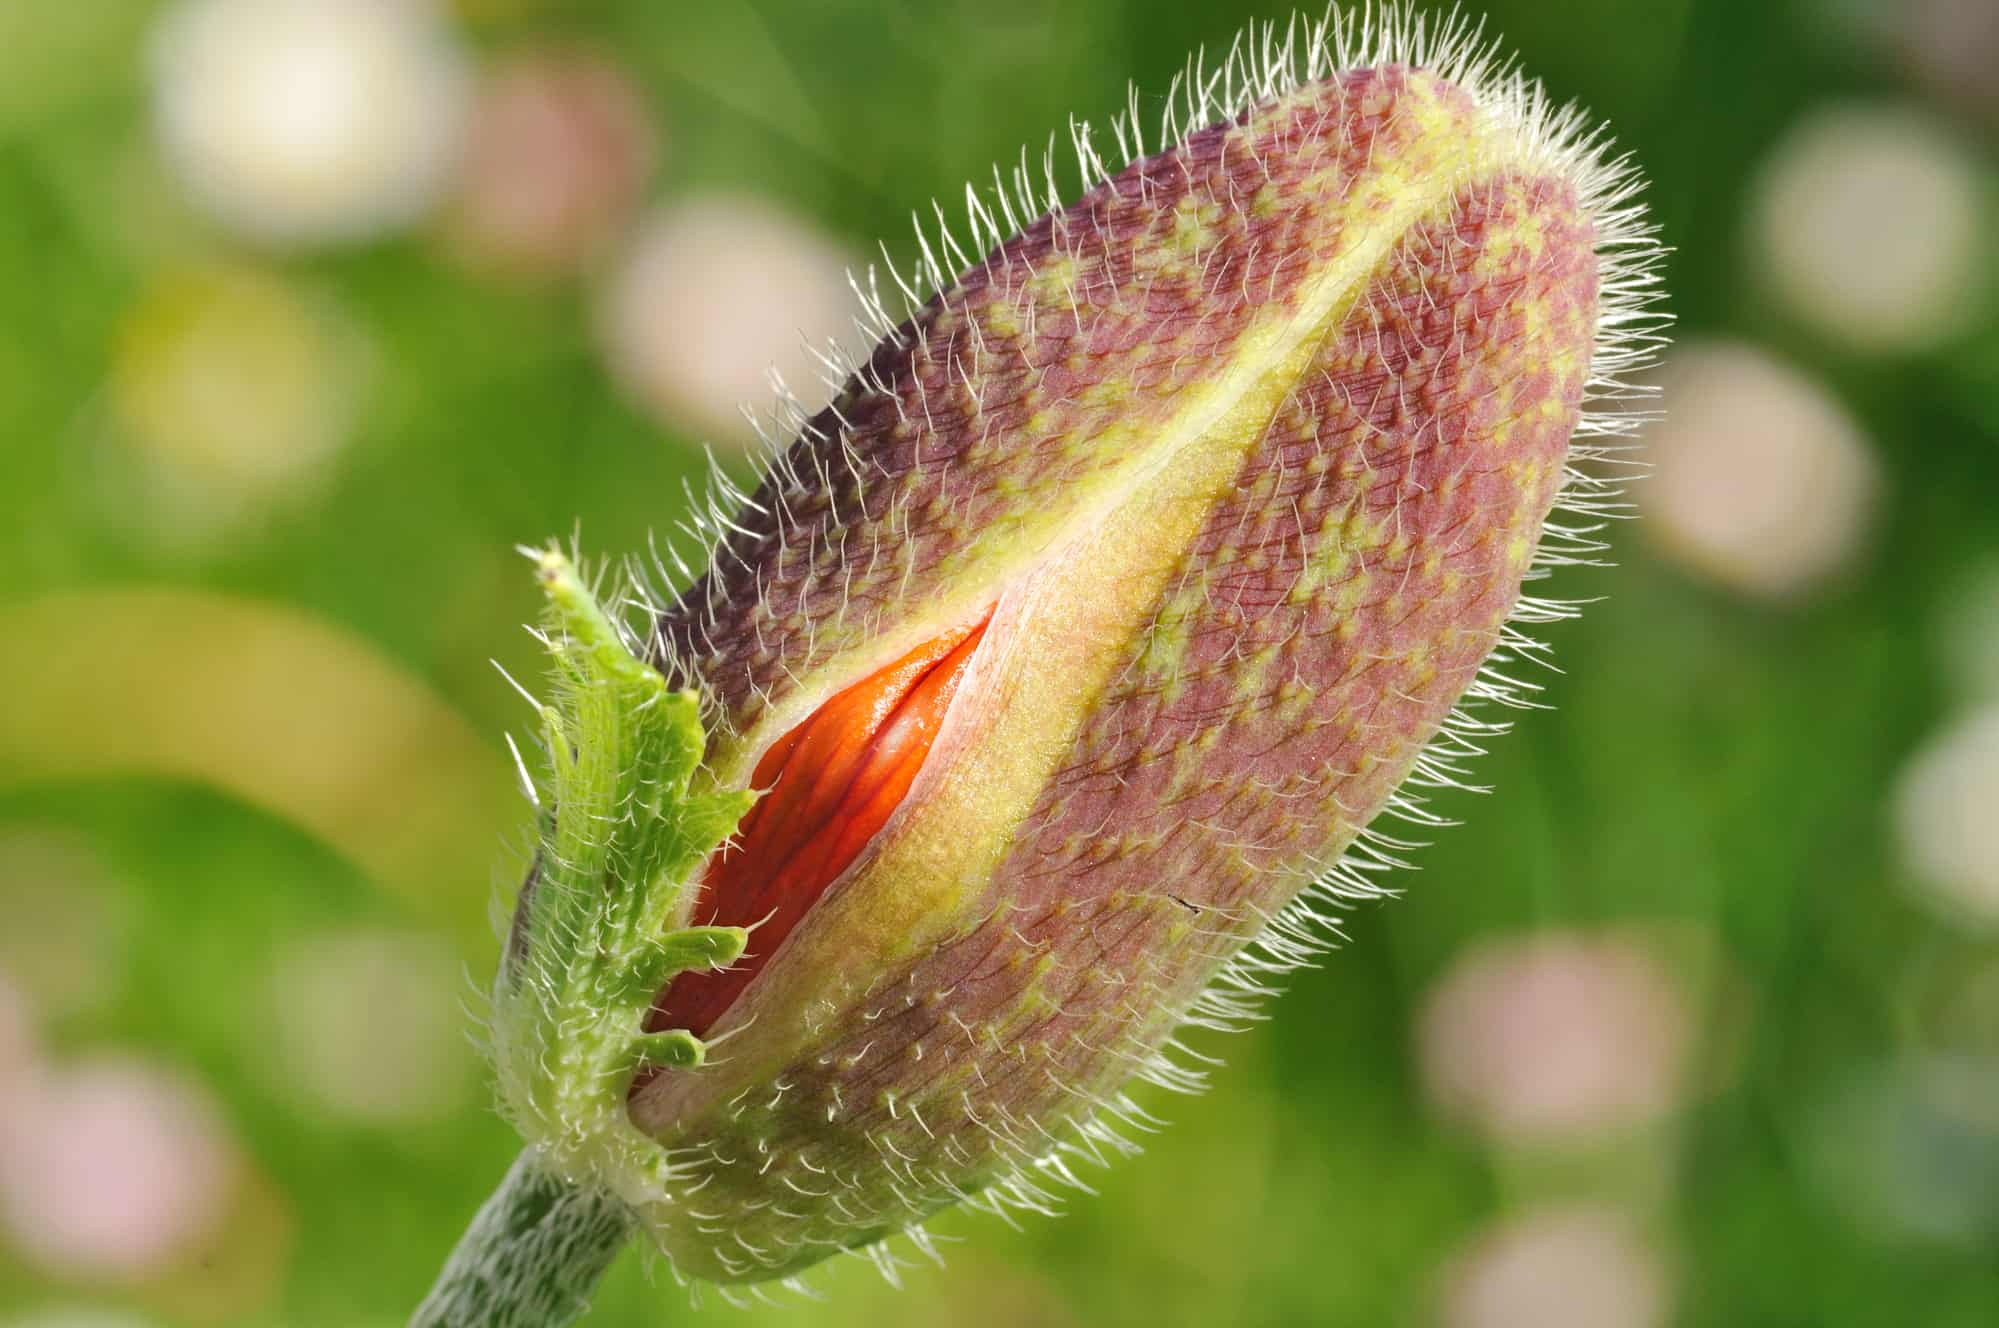 Macro shot of poppy flower head opening, focus is on red area similar to female vagina